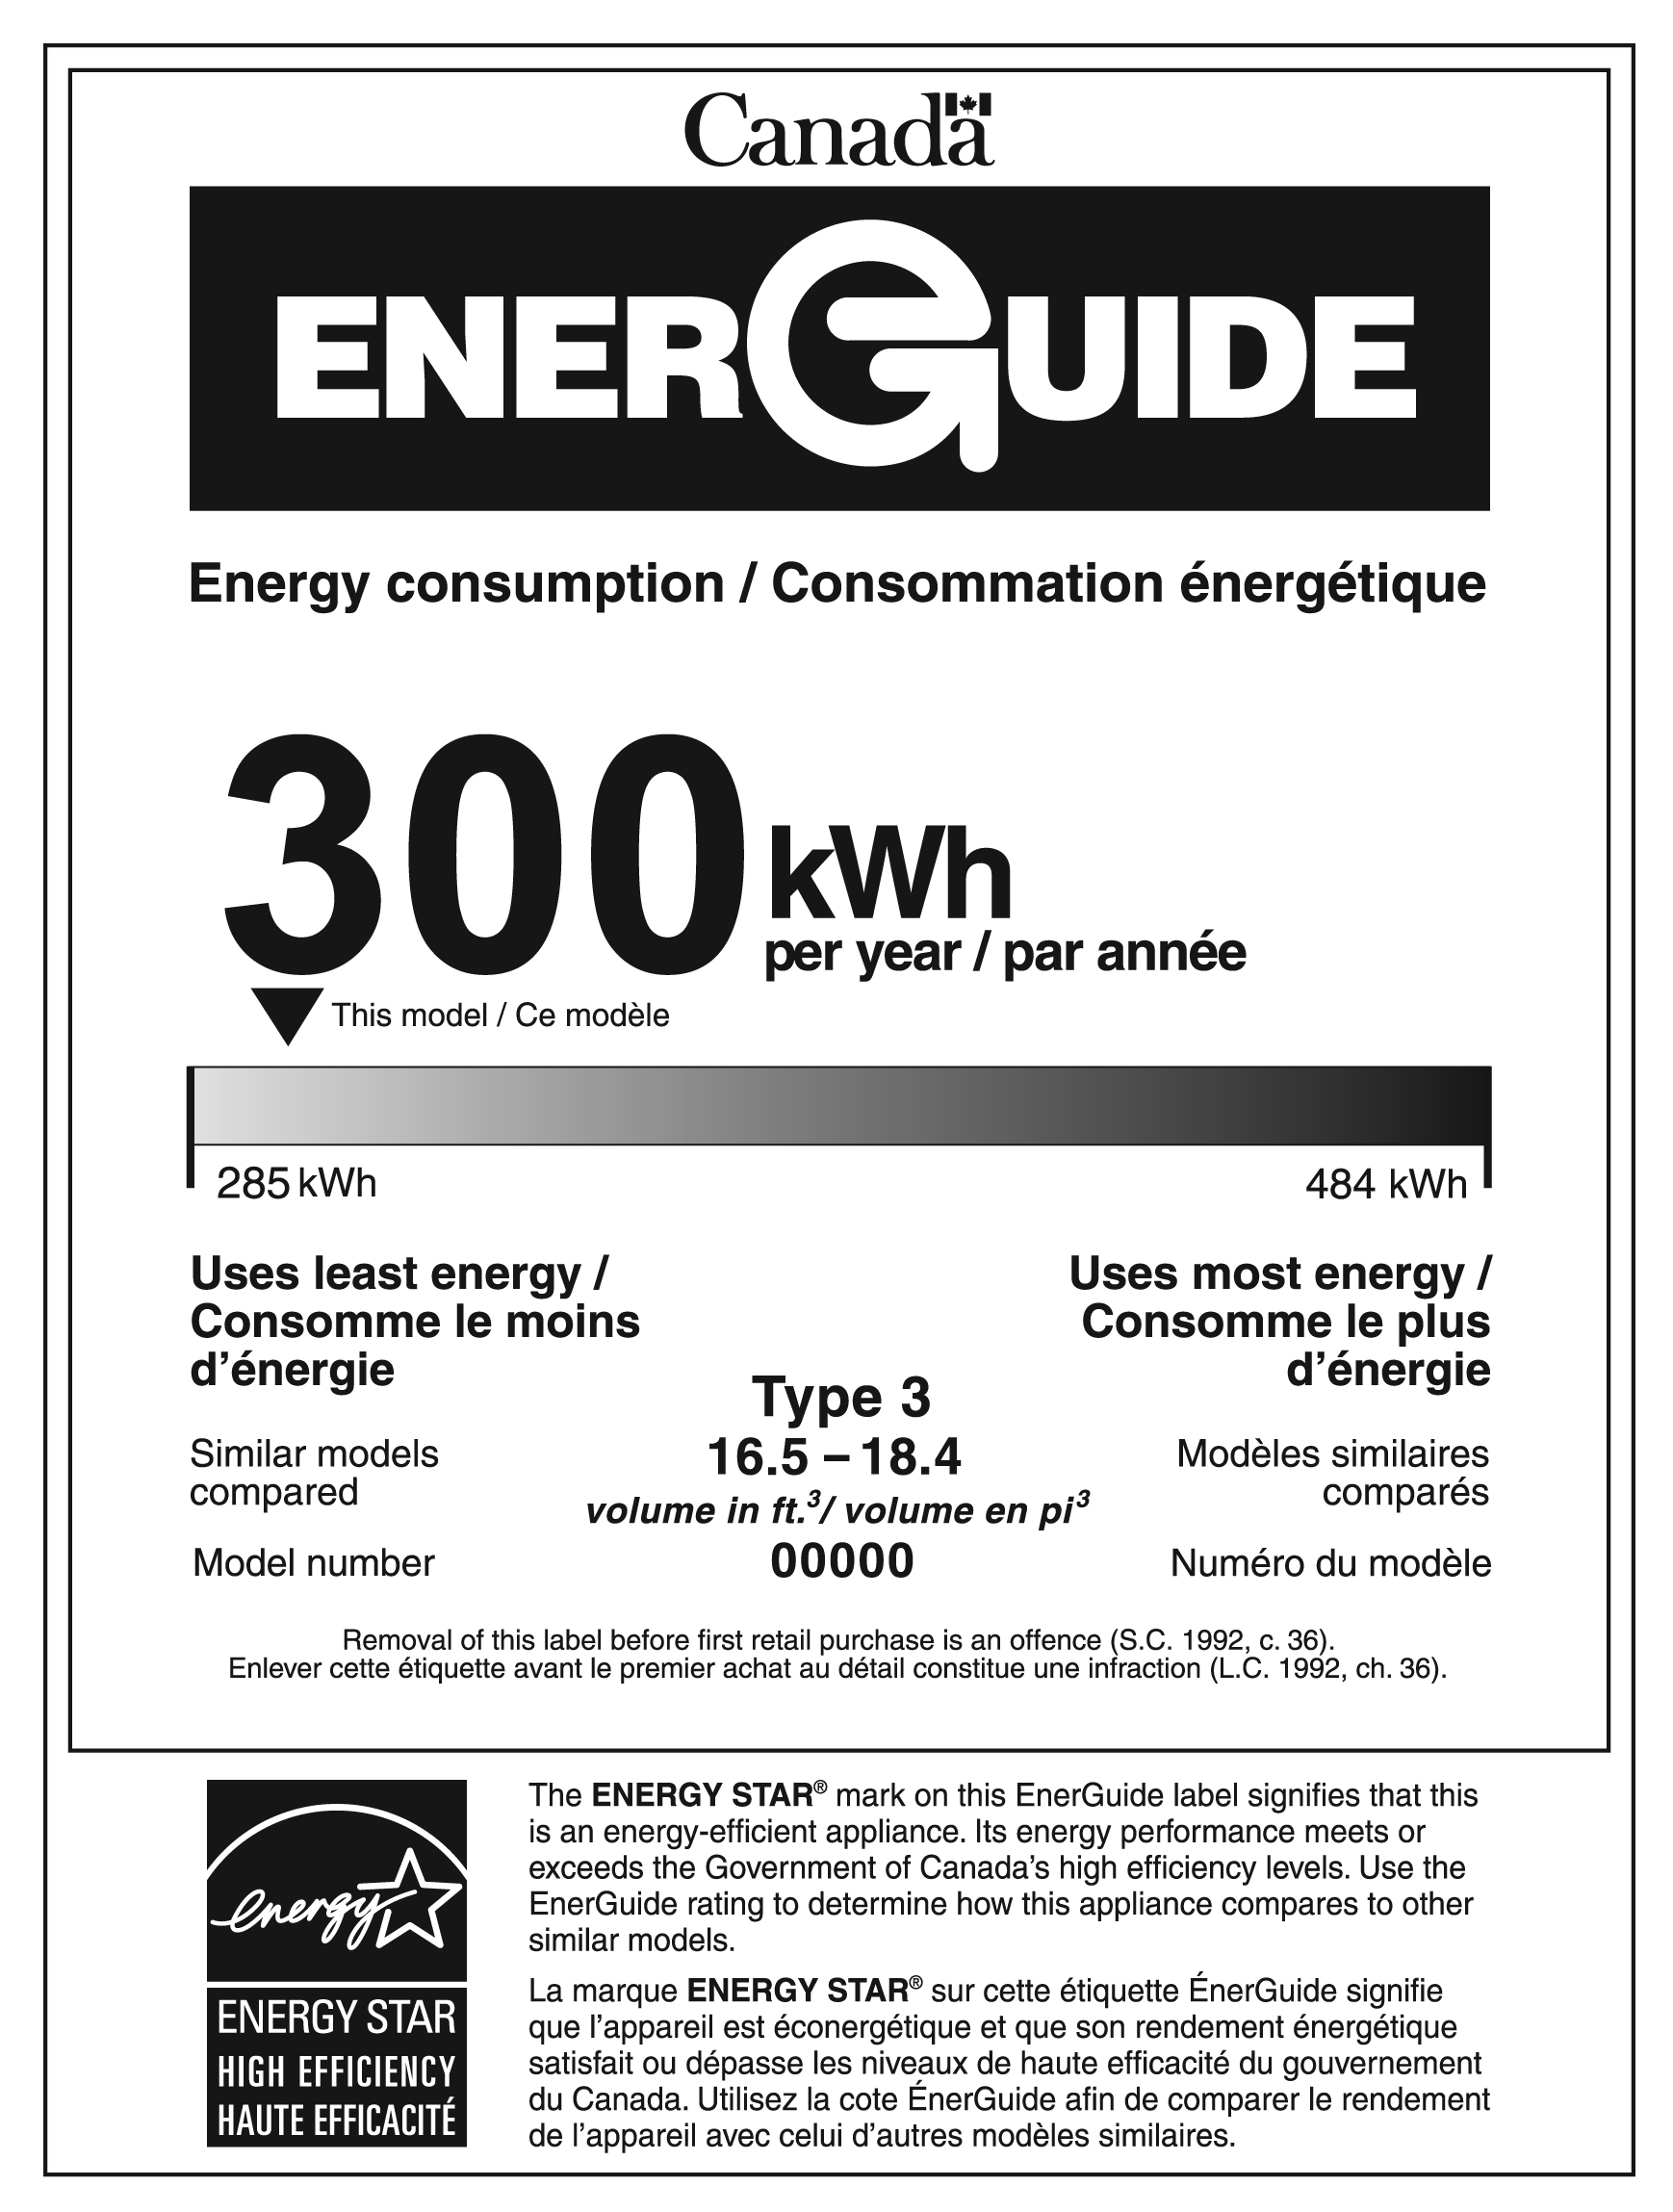 EnerGuide label with an ENERGY STAR symbol